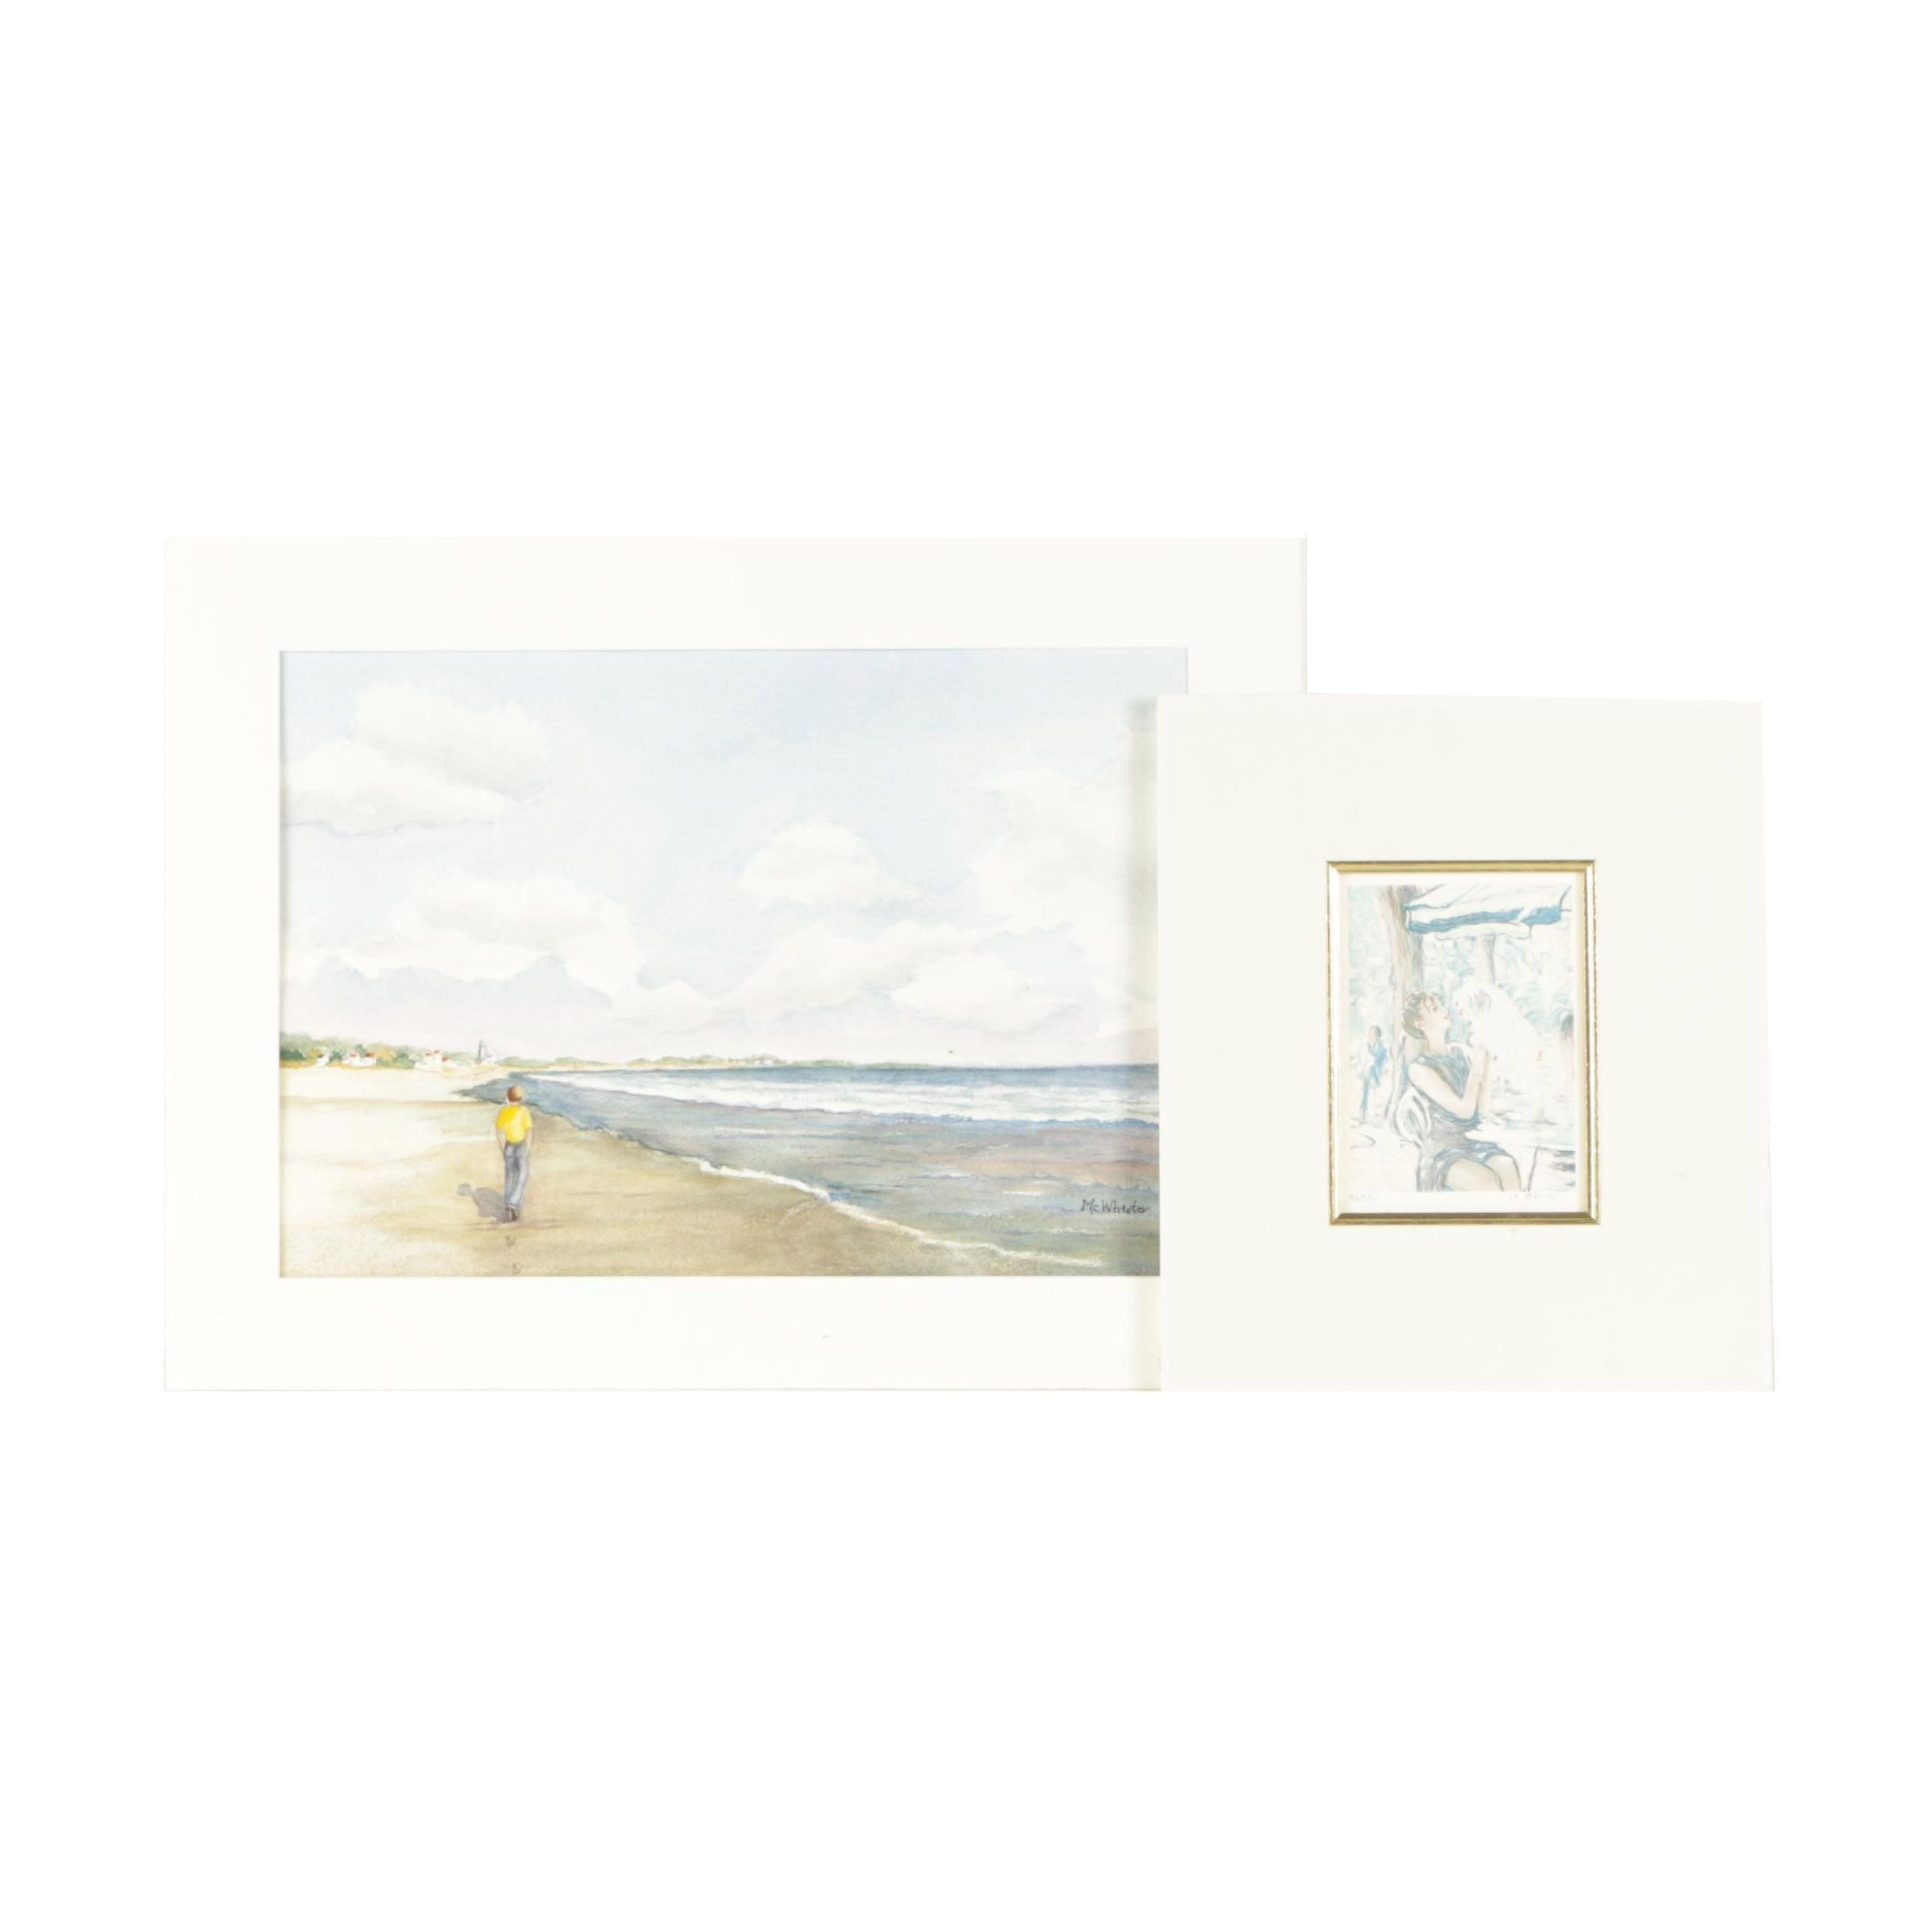 Limited Edition Lithograph with McWhirter Watercolor of Beach